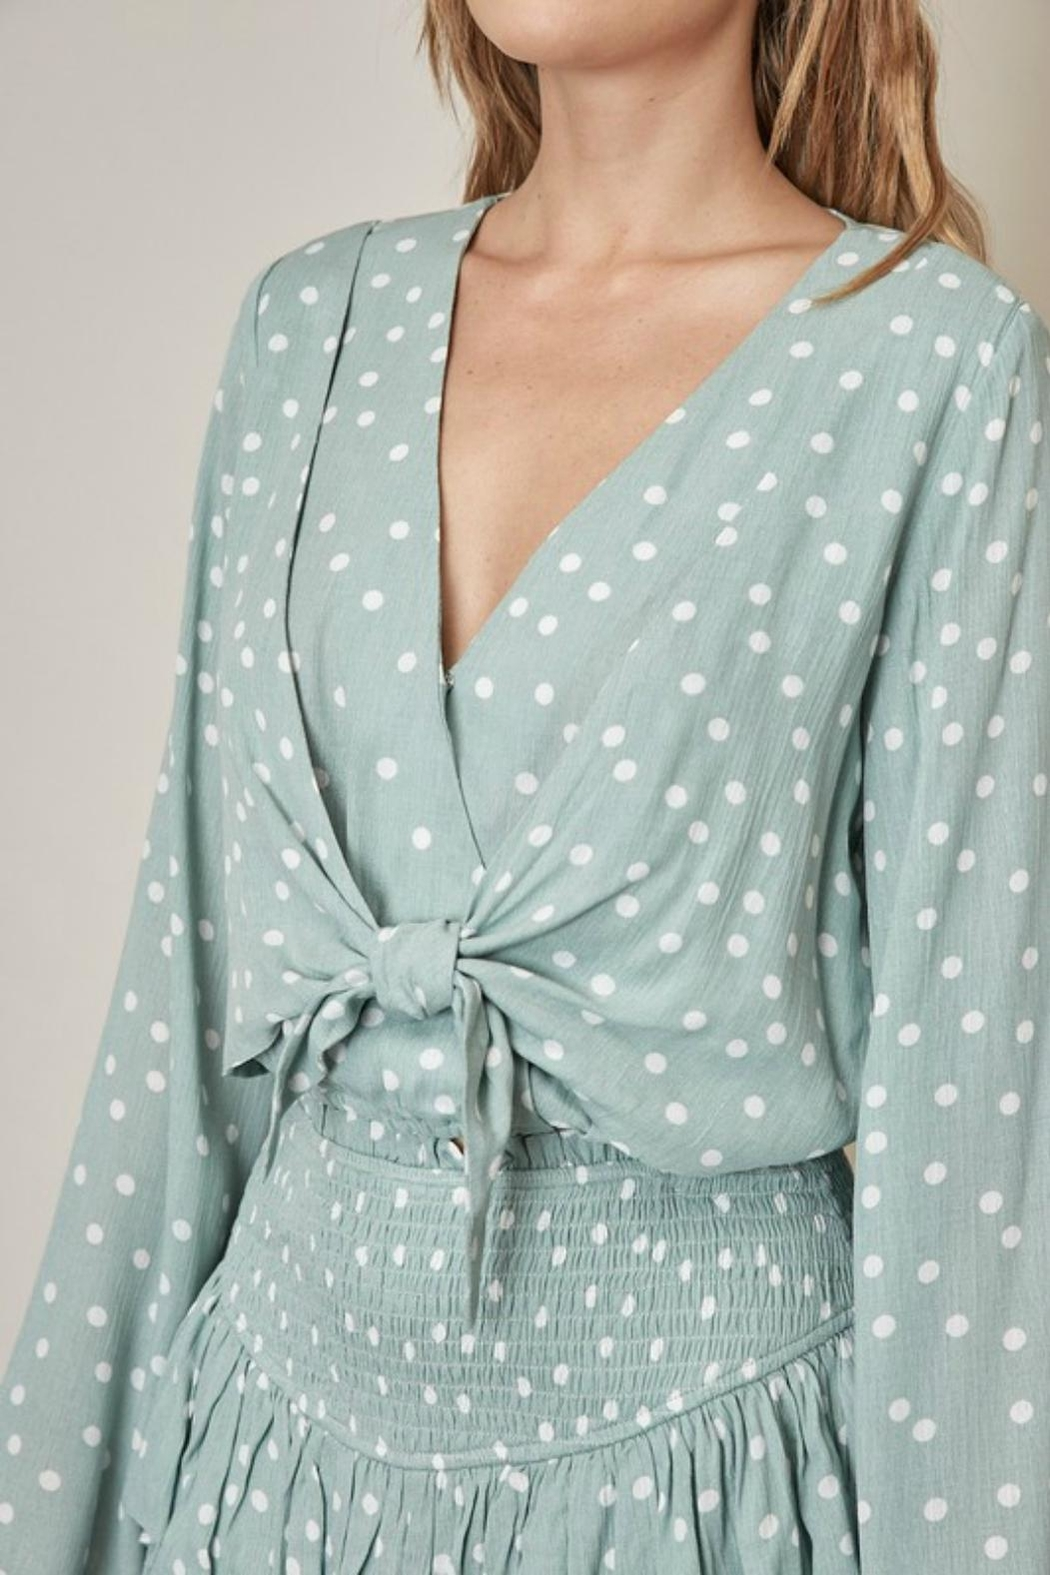 Pretty Little Things Polka Dot Blouse - Back Cropped Image